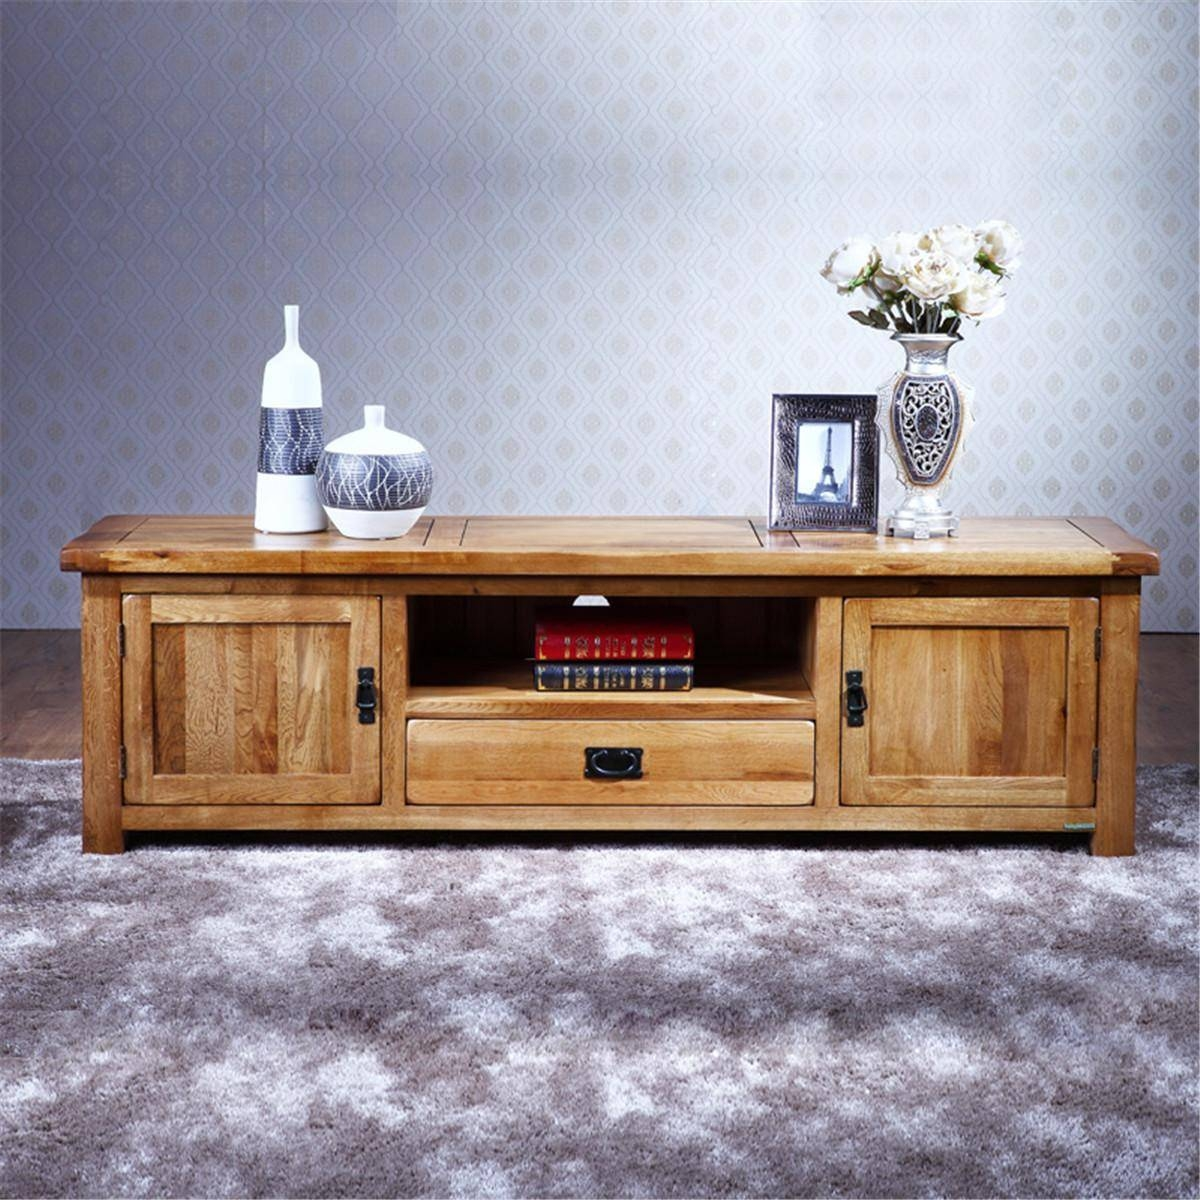 2017 100% Pure Solid Wood Tv Stand Oak Tv Stand Media Console Regarding Cheap Oak Tv Stands (View 1 of 15)